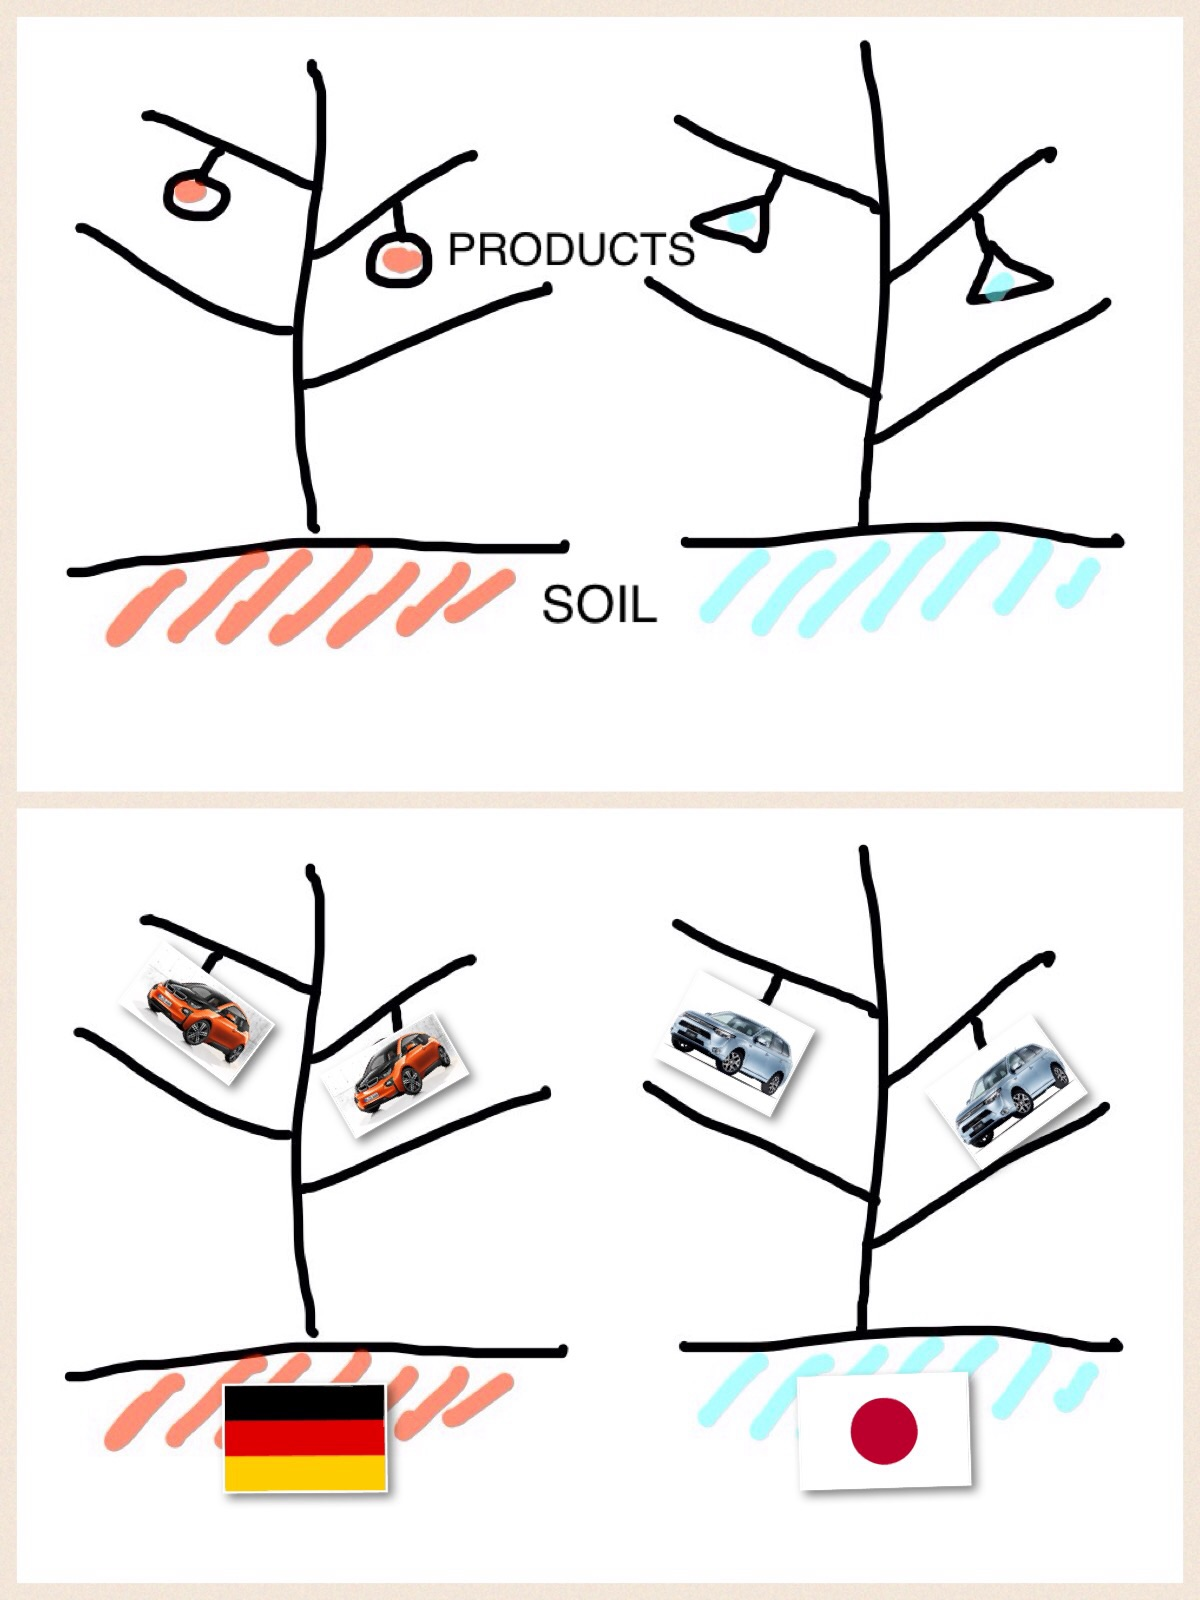 PRODUCTS と SOIL